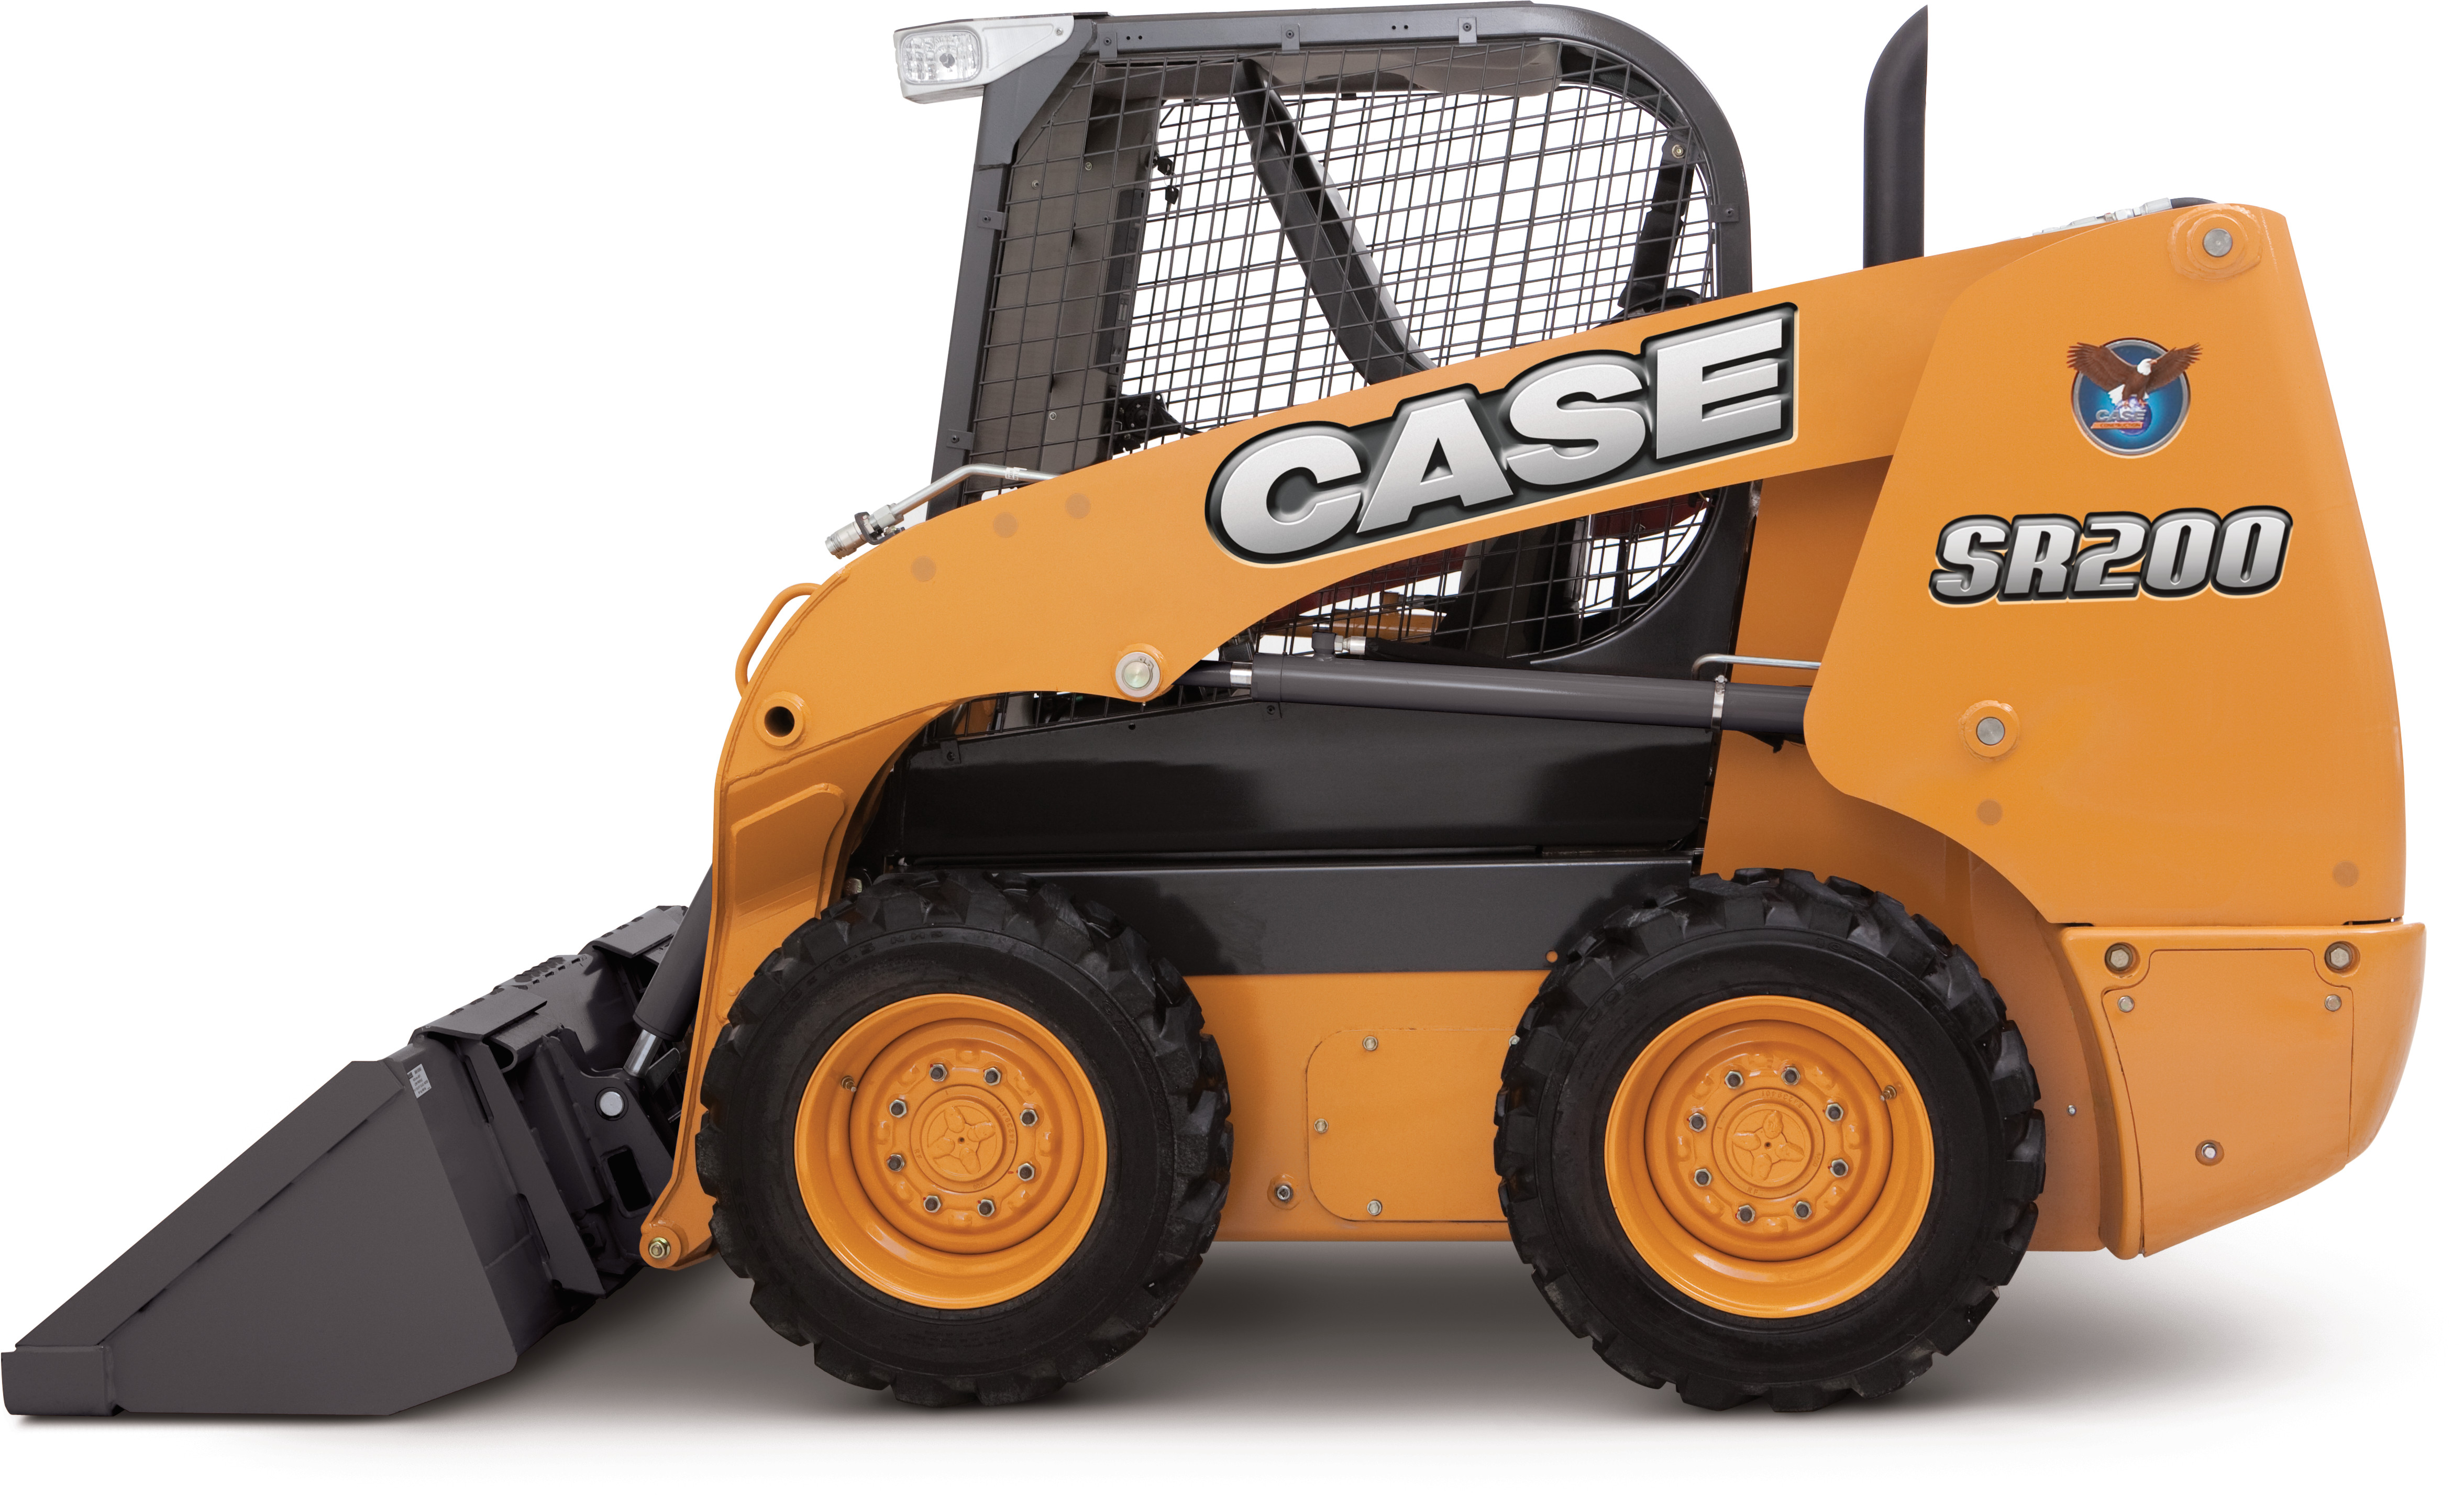 Skid Steer Loaders Sydney, Newcastle, Queensland | Earthmoving Equipment Australia